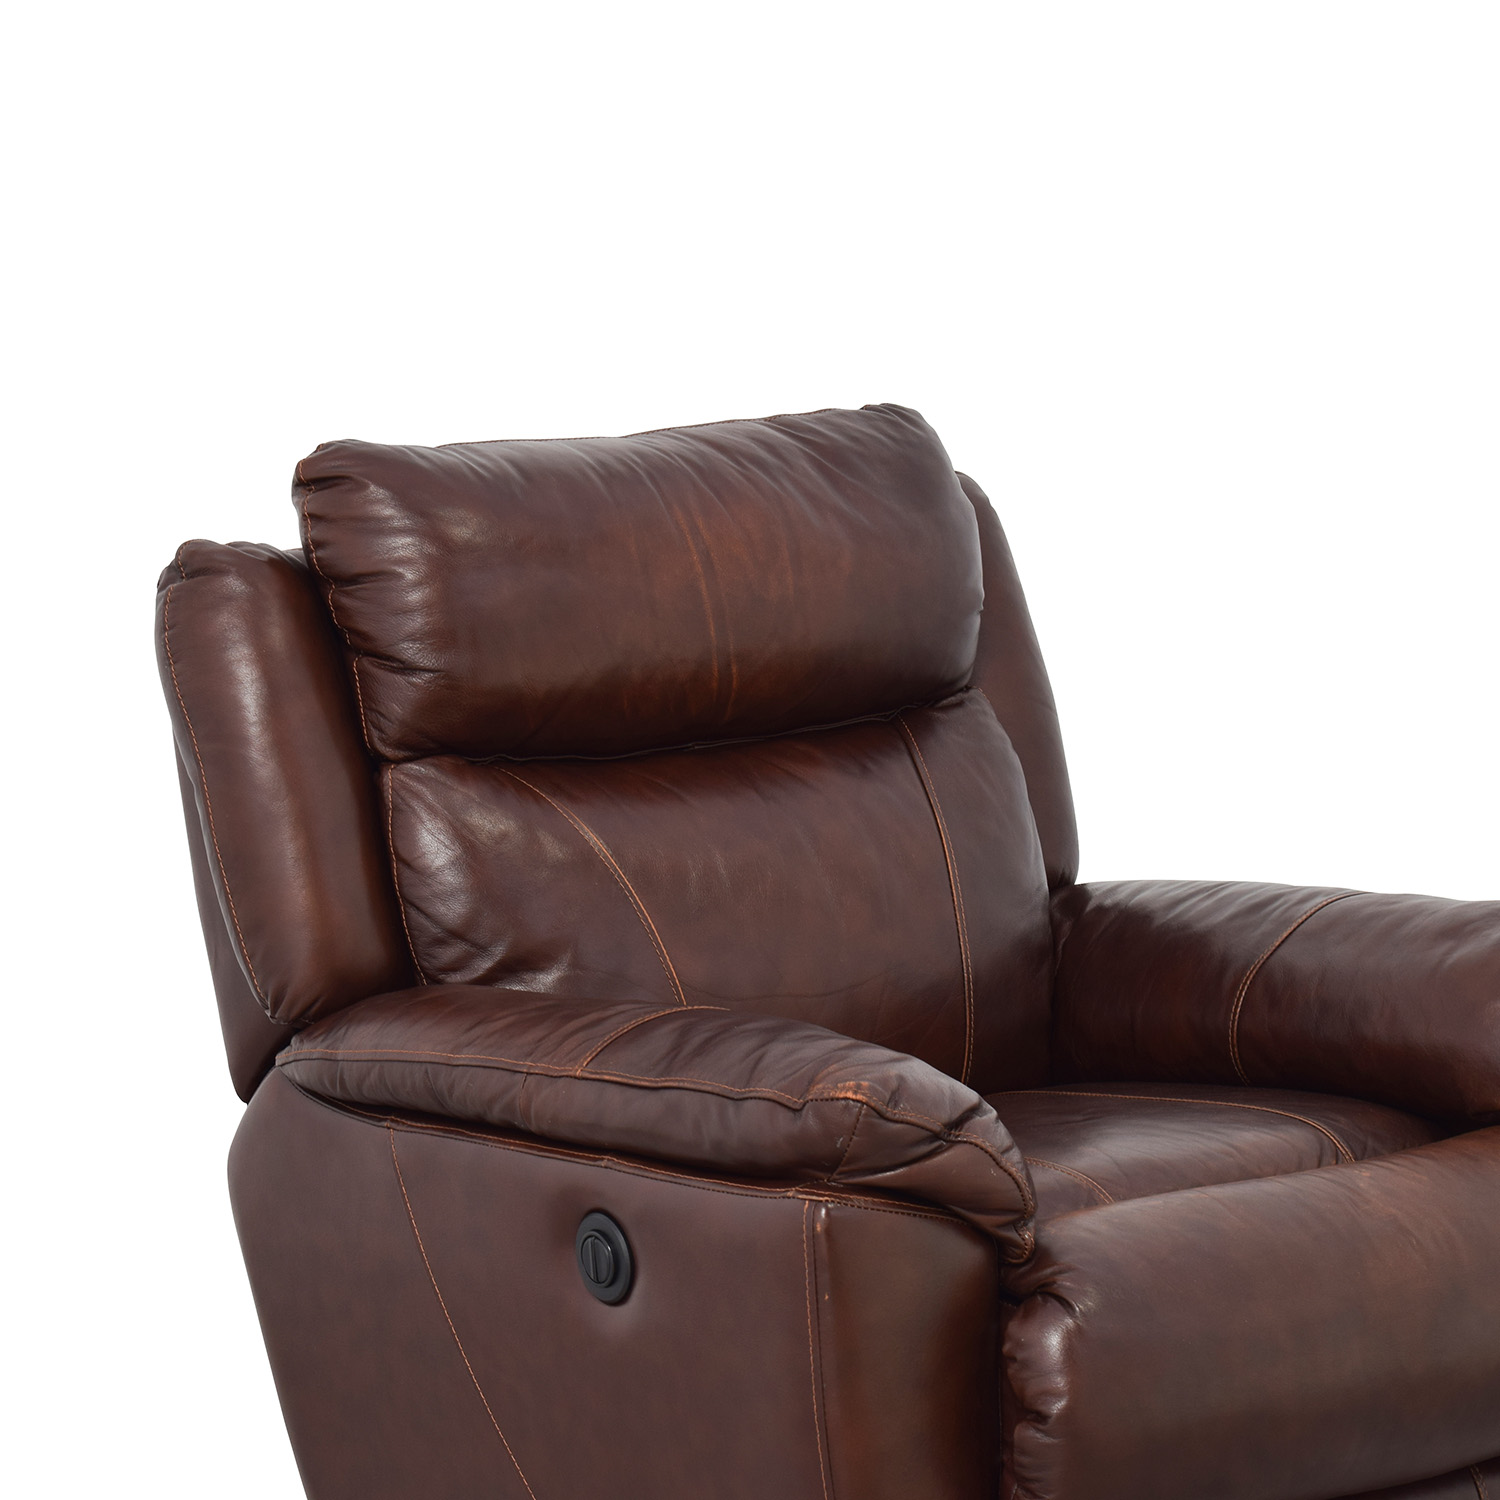 Macys Macys Brown Leather Power Recliner discount